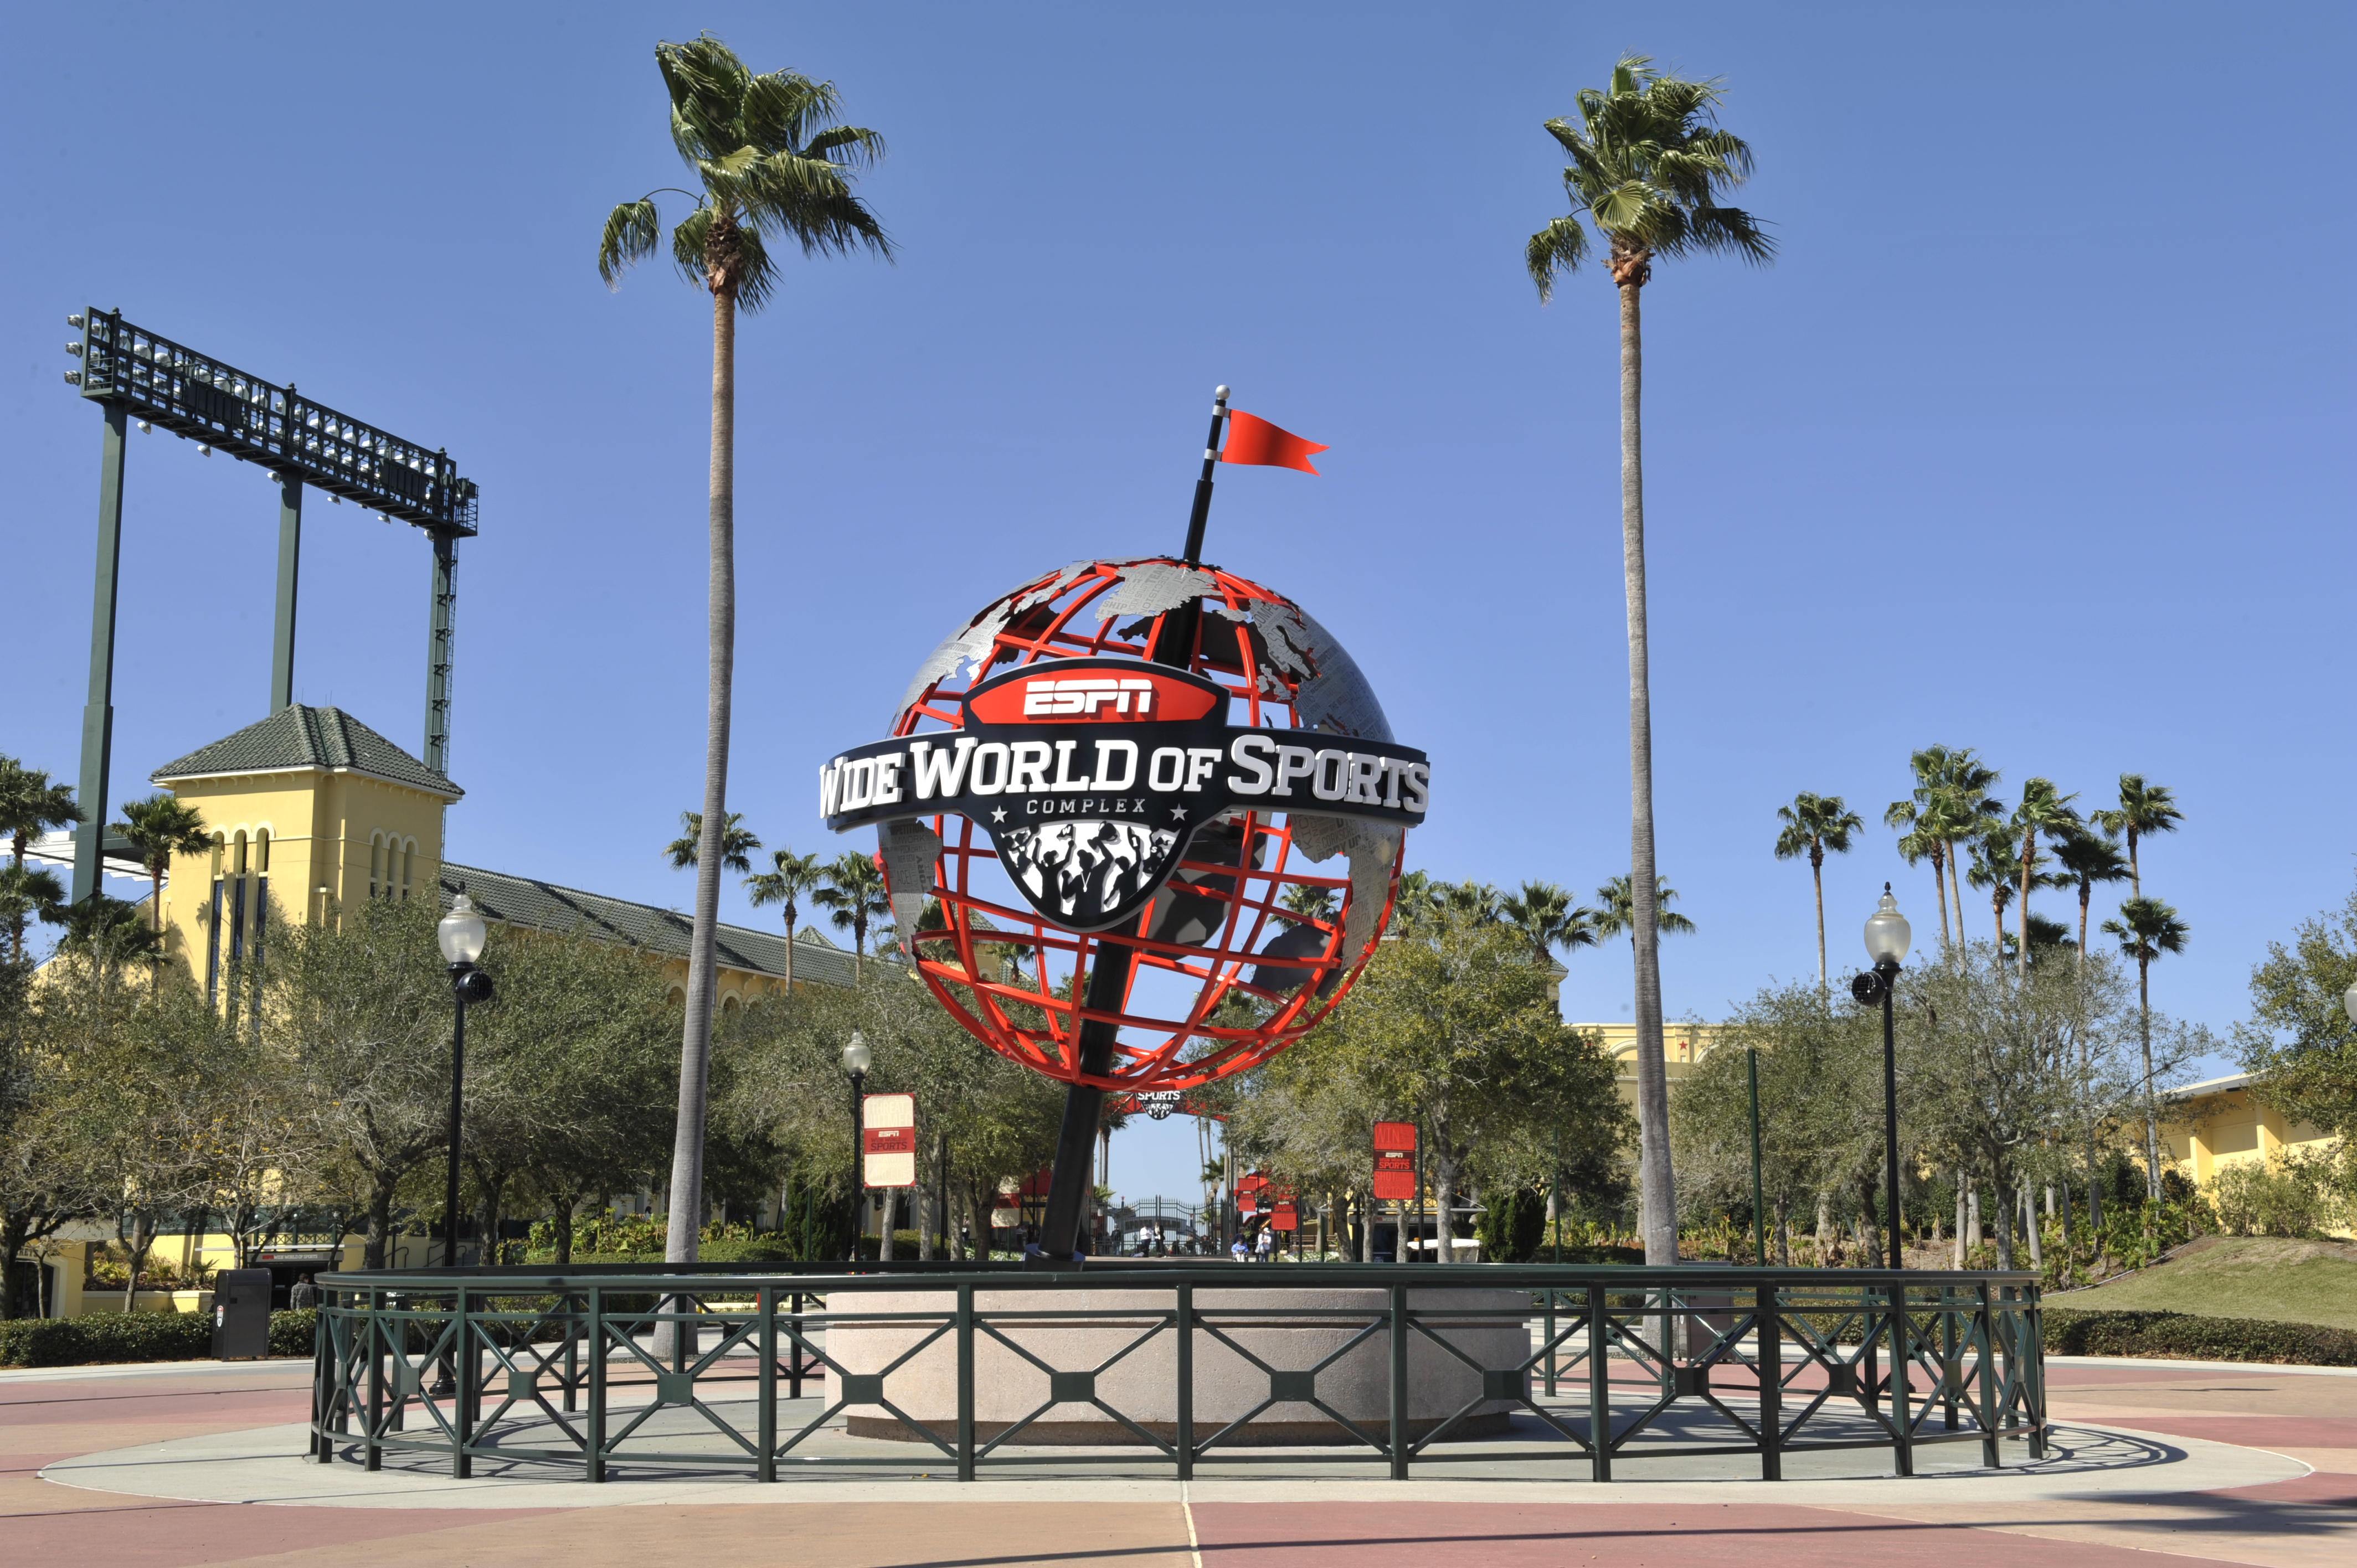 ESPN Wide World of Sports overview